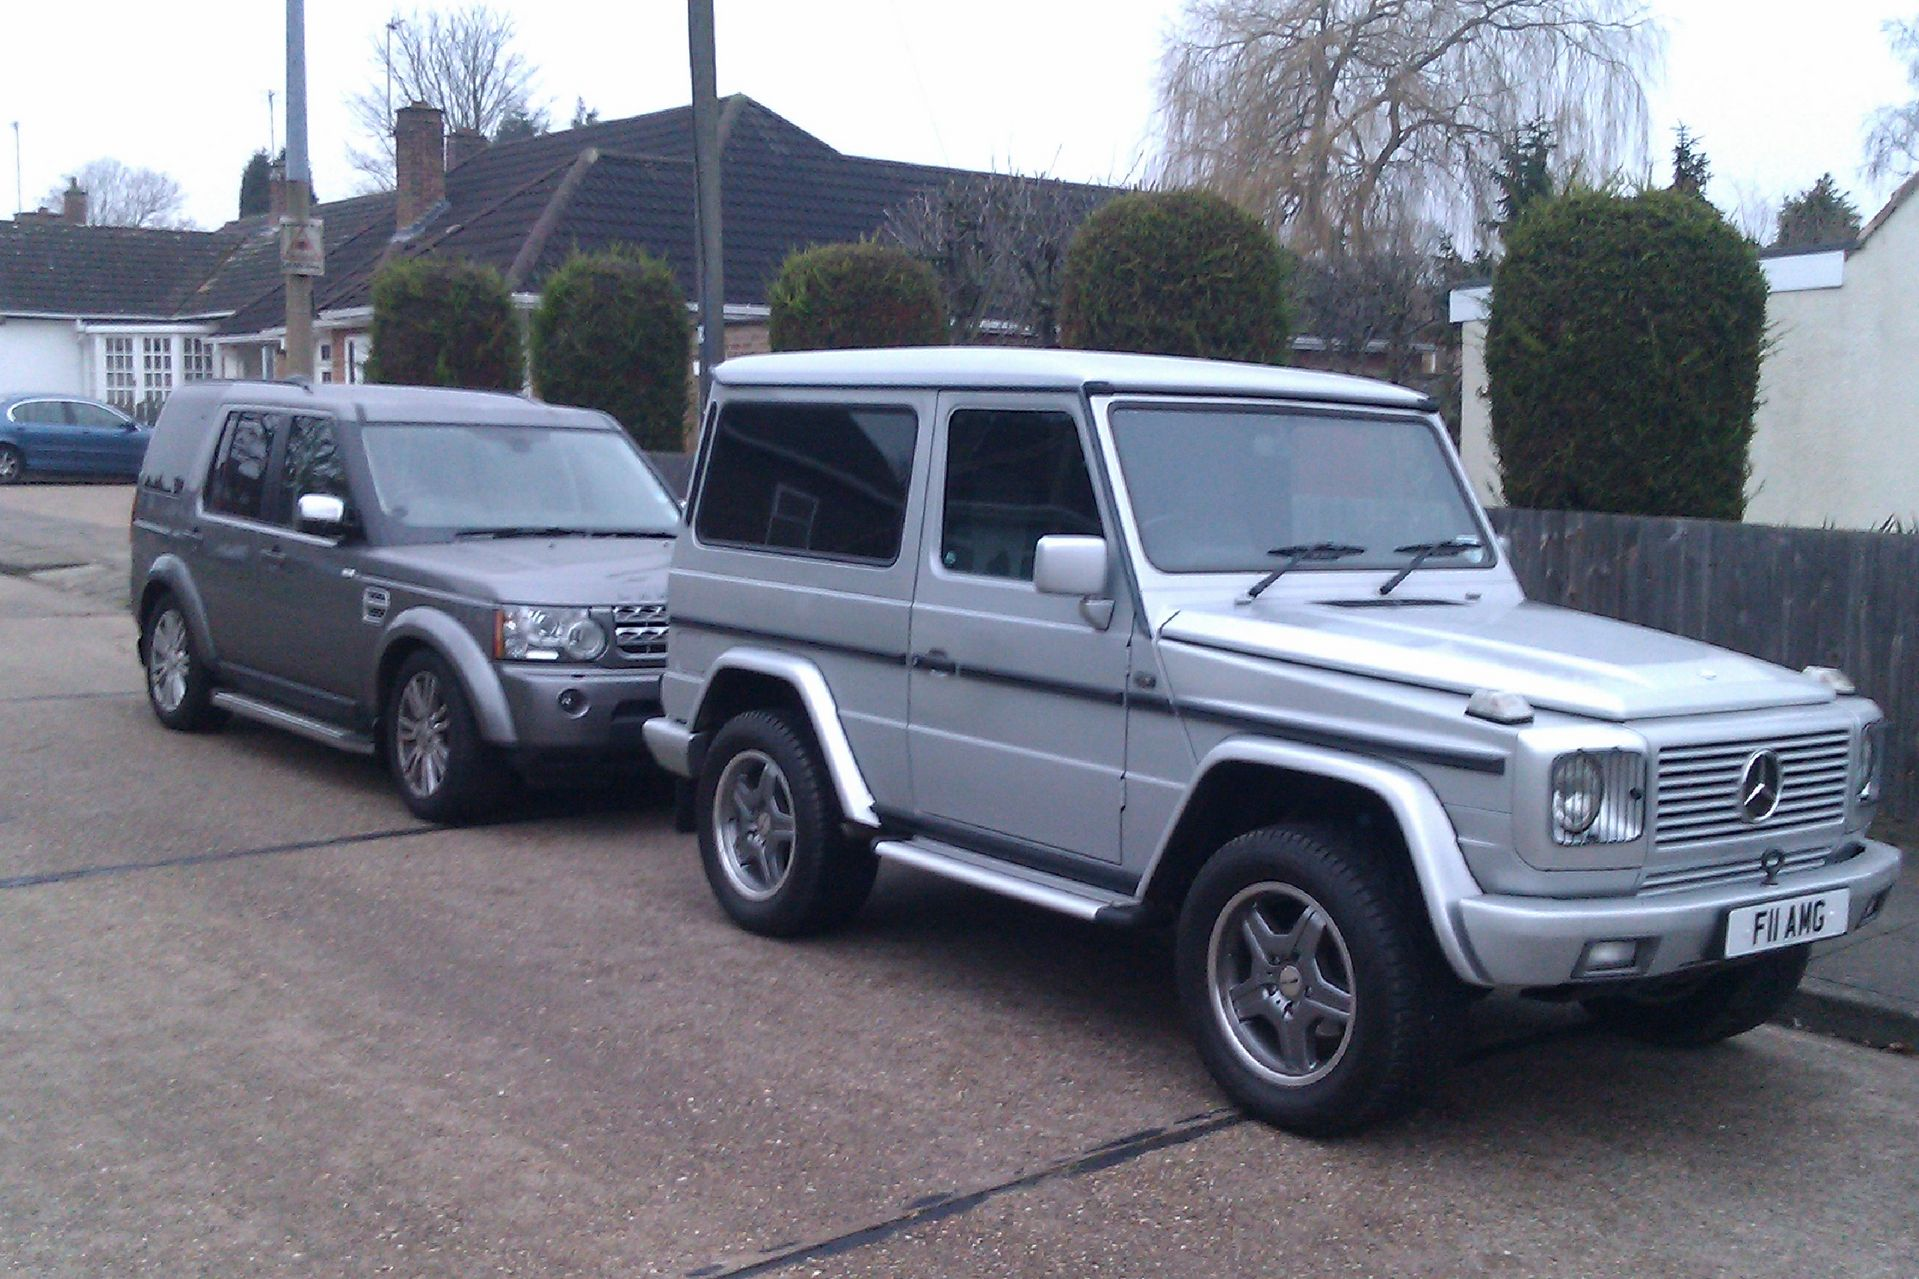 Disco3 Co Uk View Topic My 20 Year Old G Wagon And My